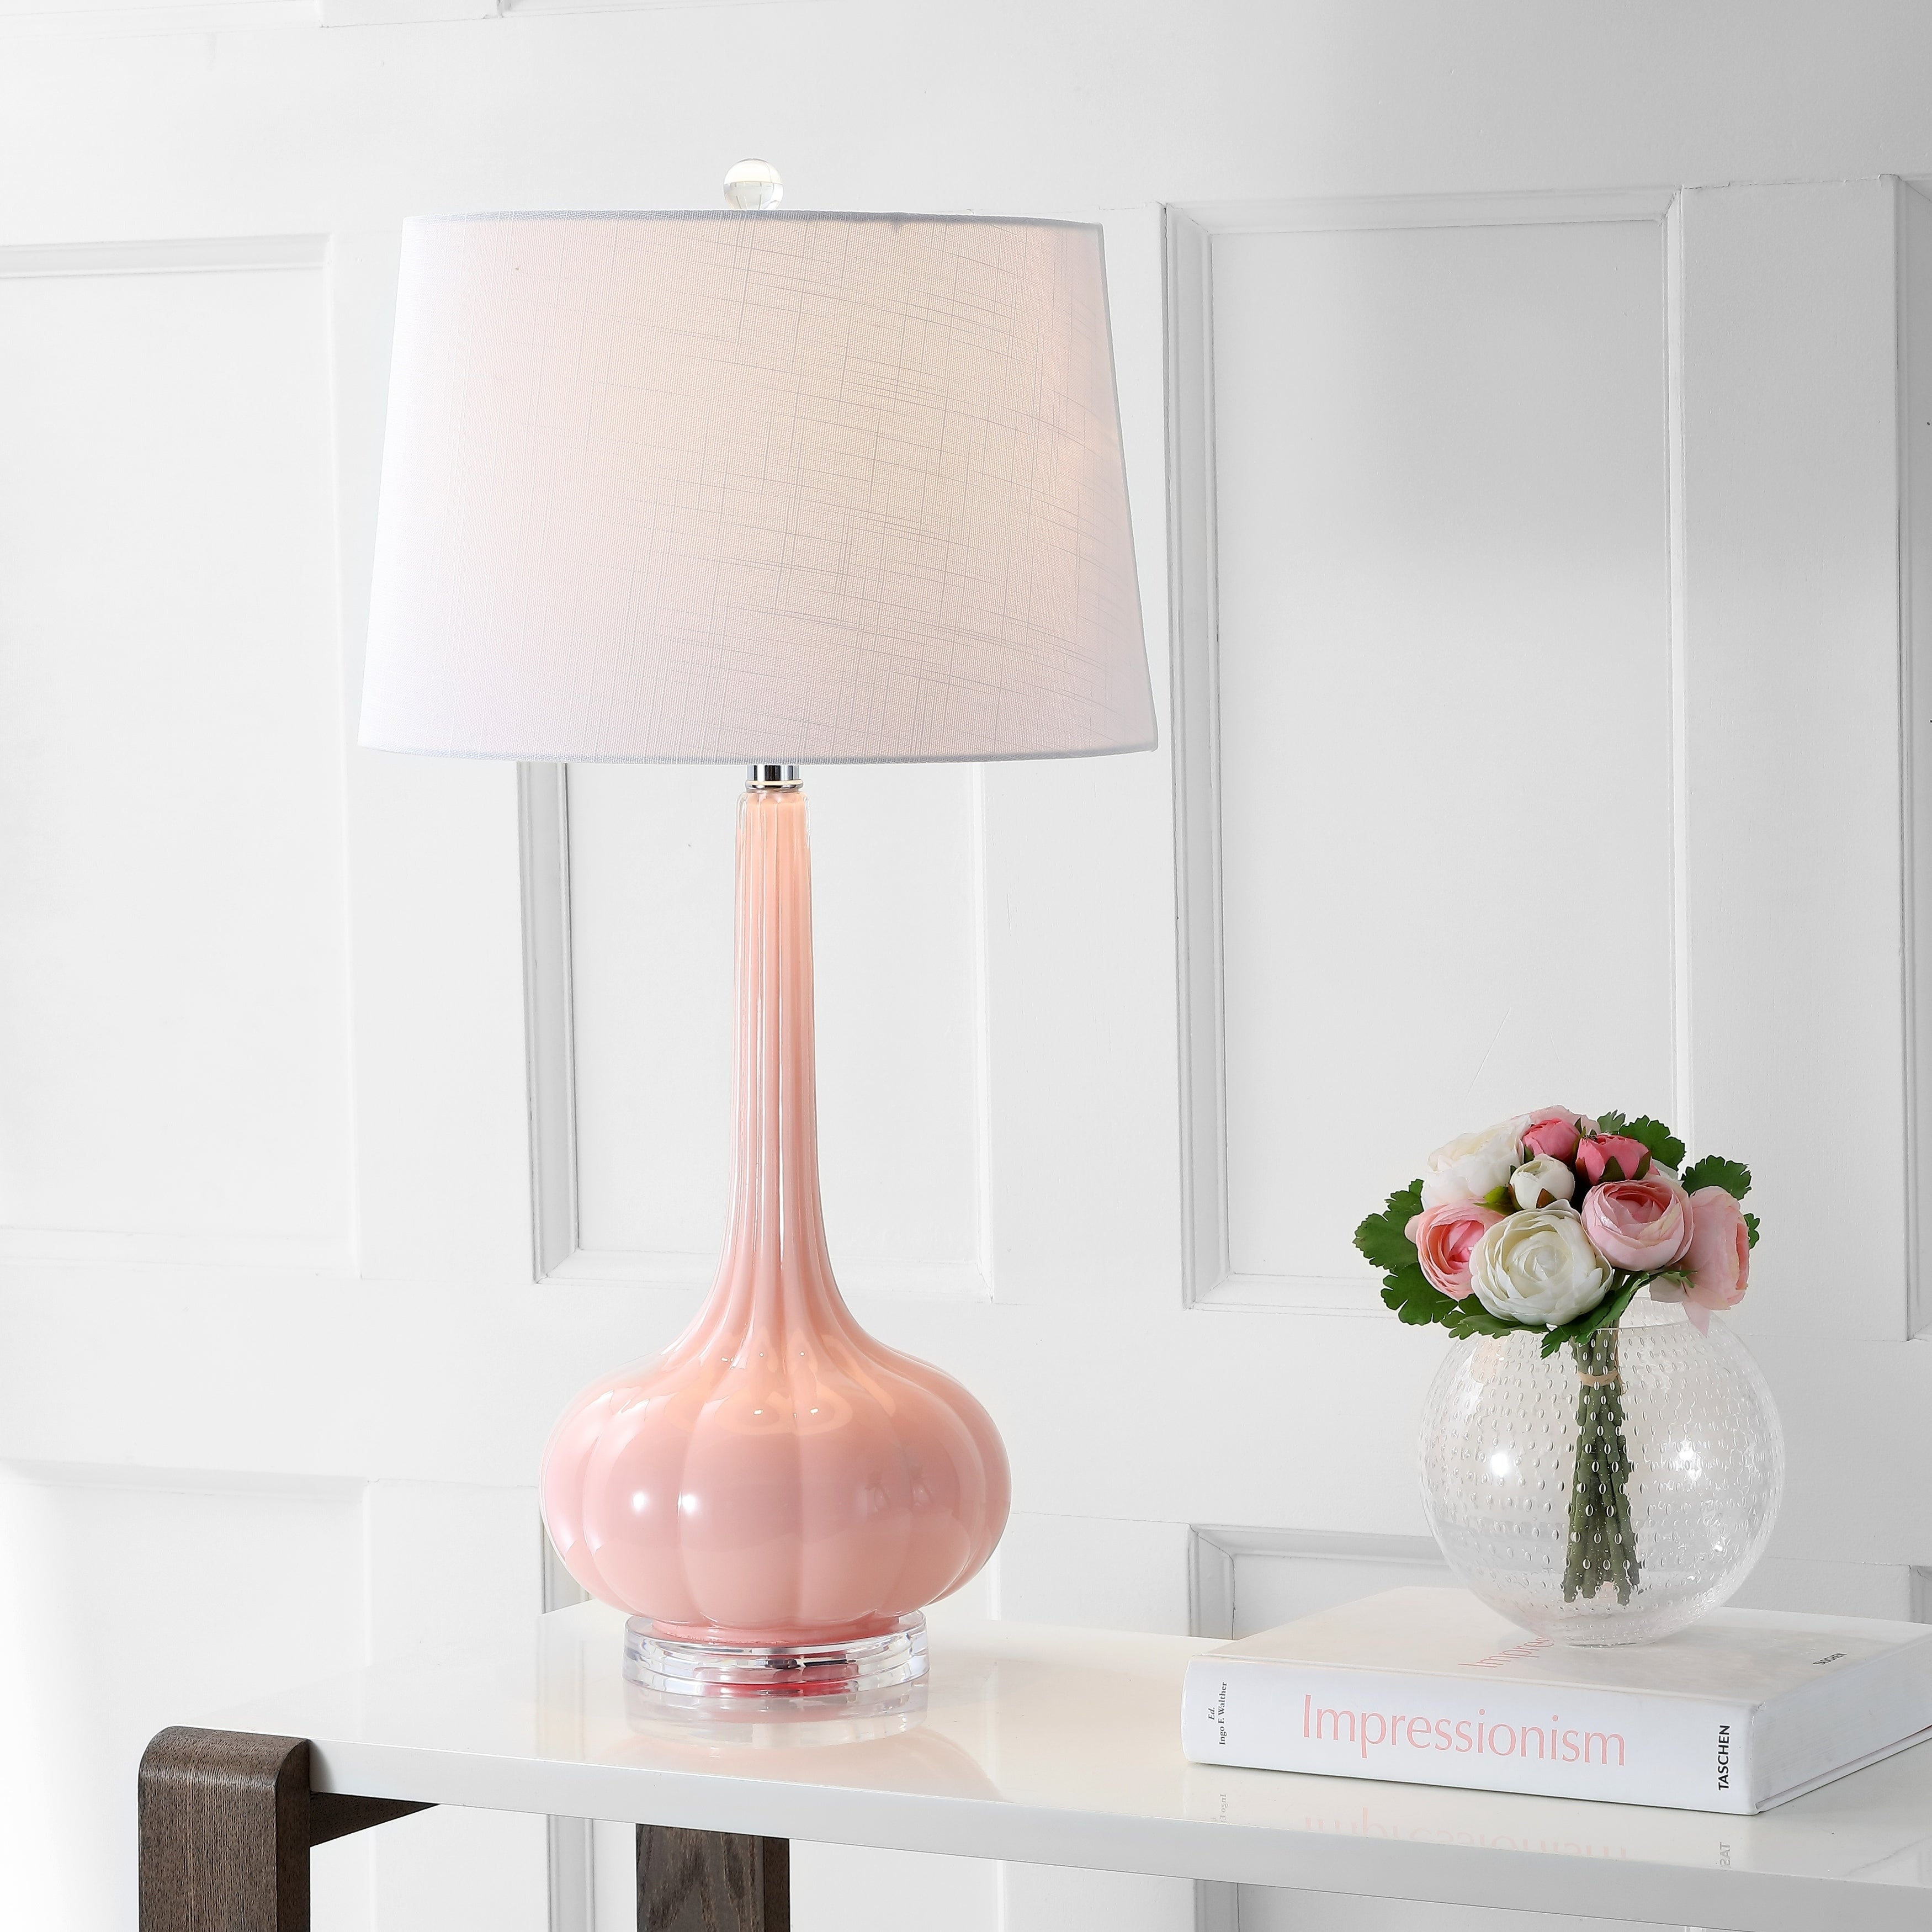 Bette 28 5 Glass Teardrop Led Table Lamp Pink Set Of 2 By Jonathan Y Overstock 20750375